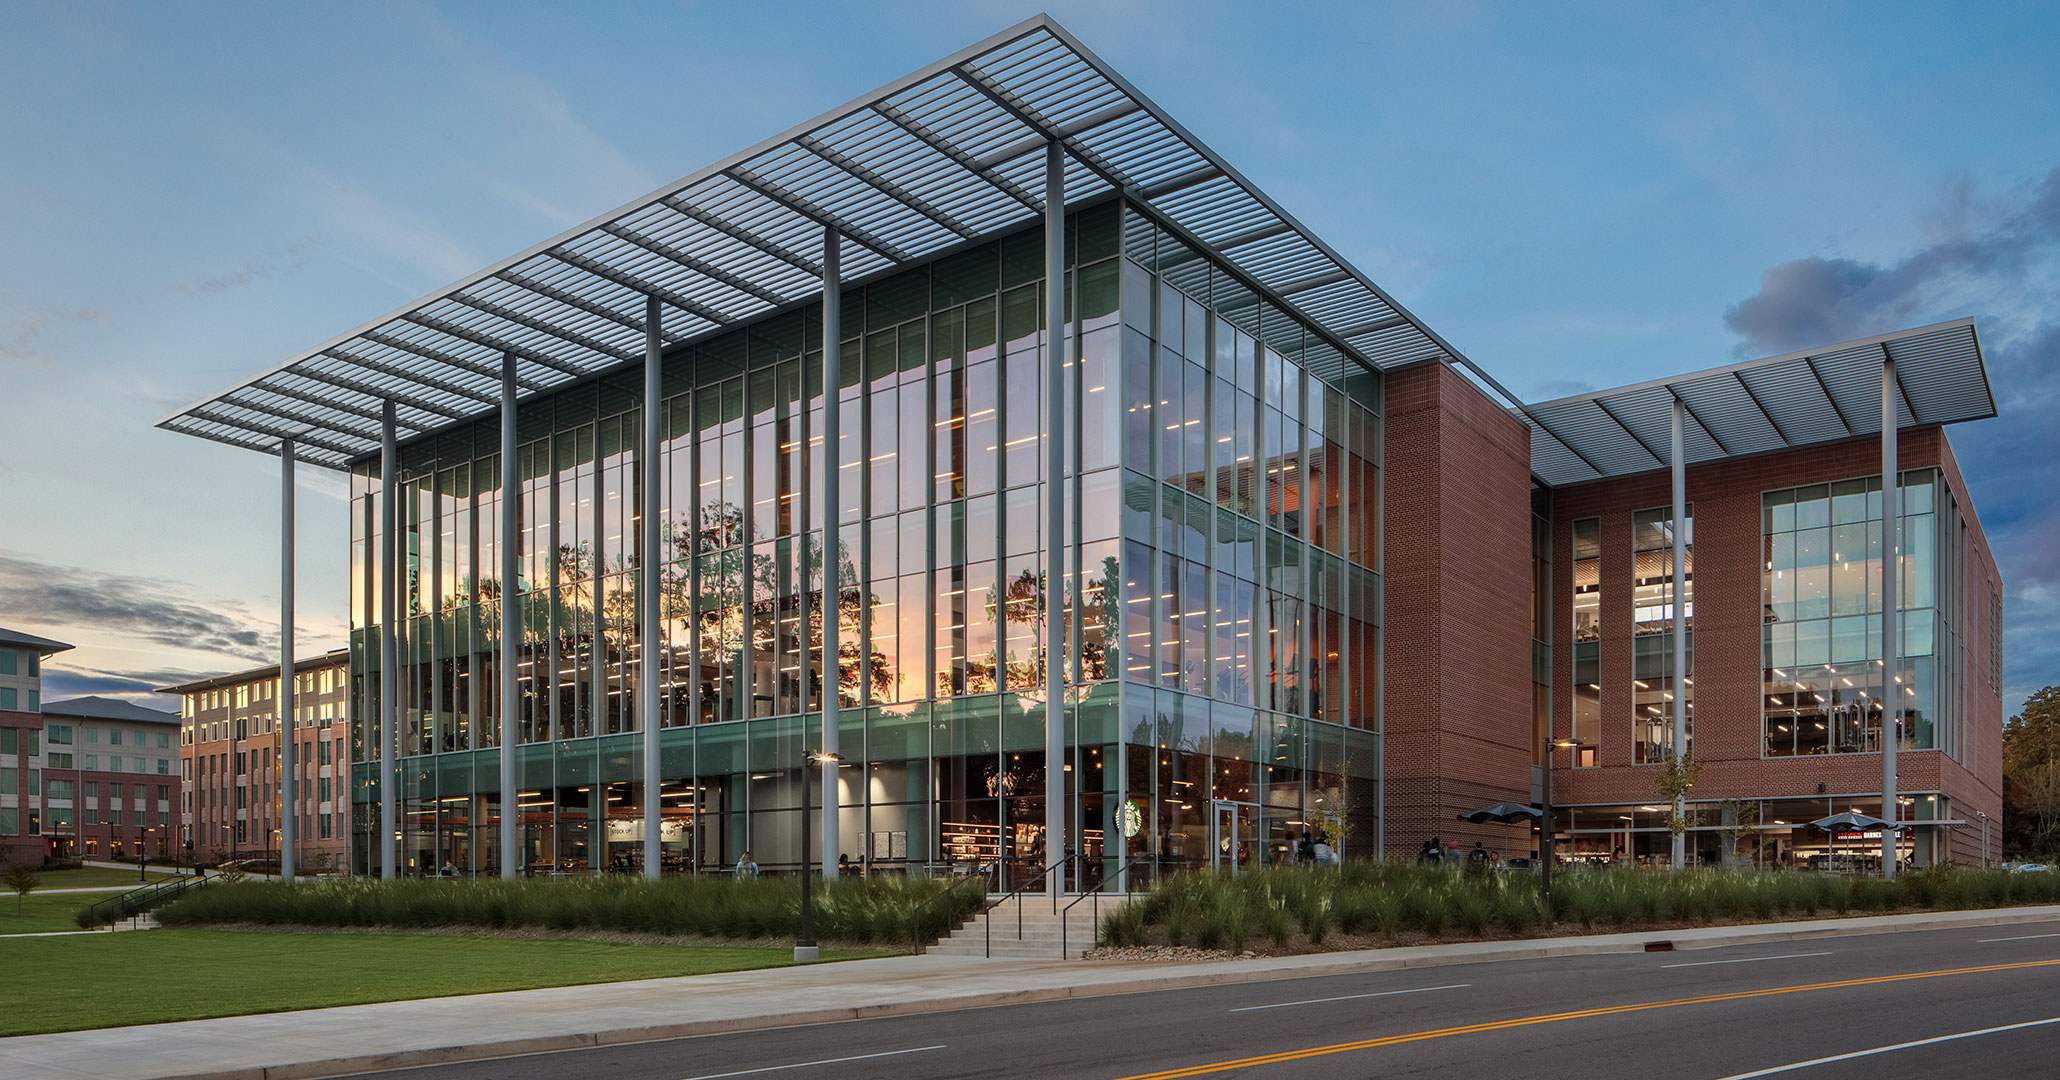 Clemson University's Douthit Hills Student Hub was designed by Boudreaux architects.